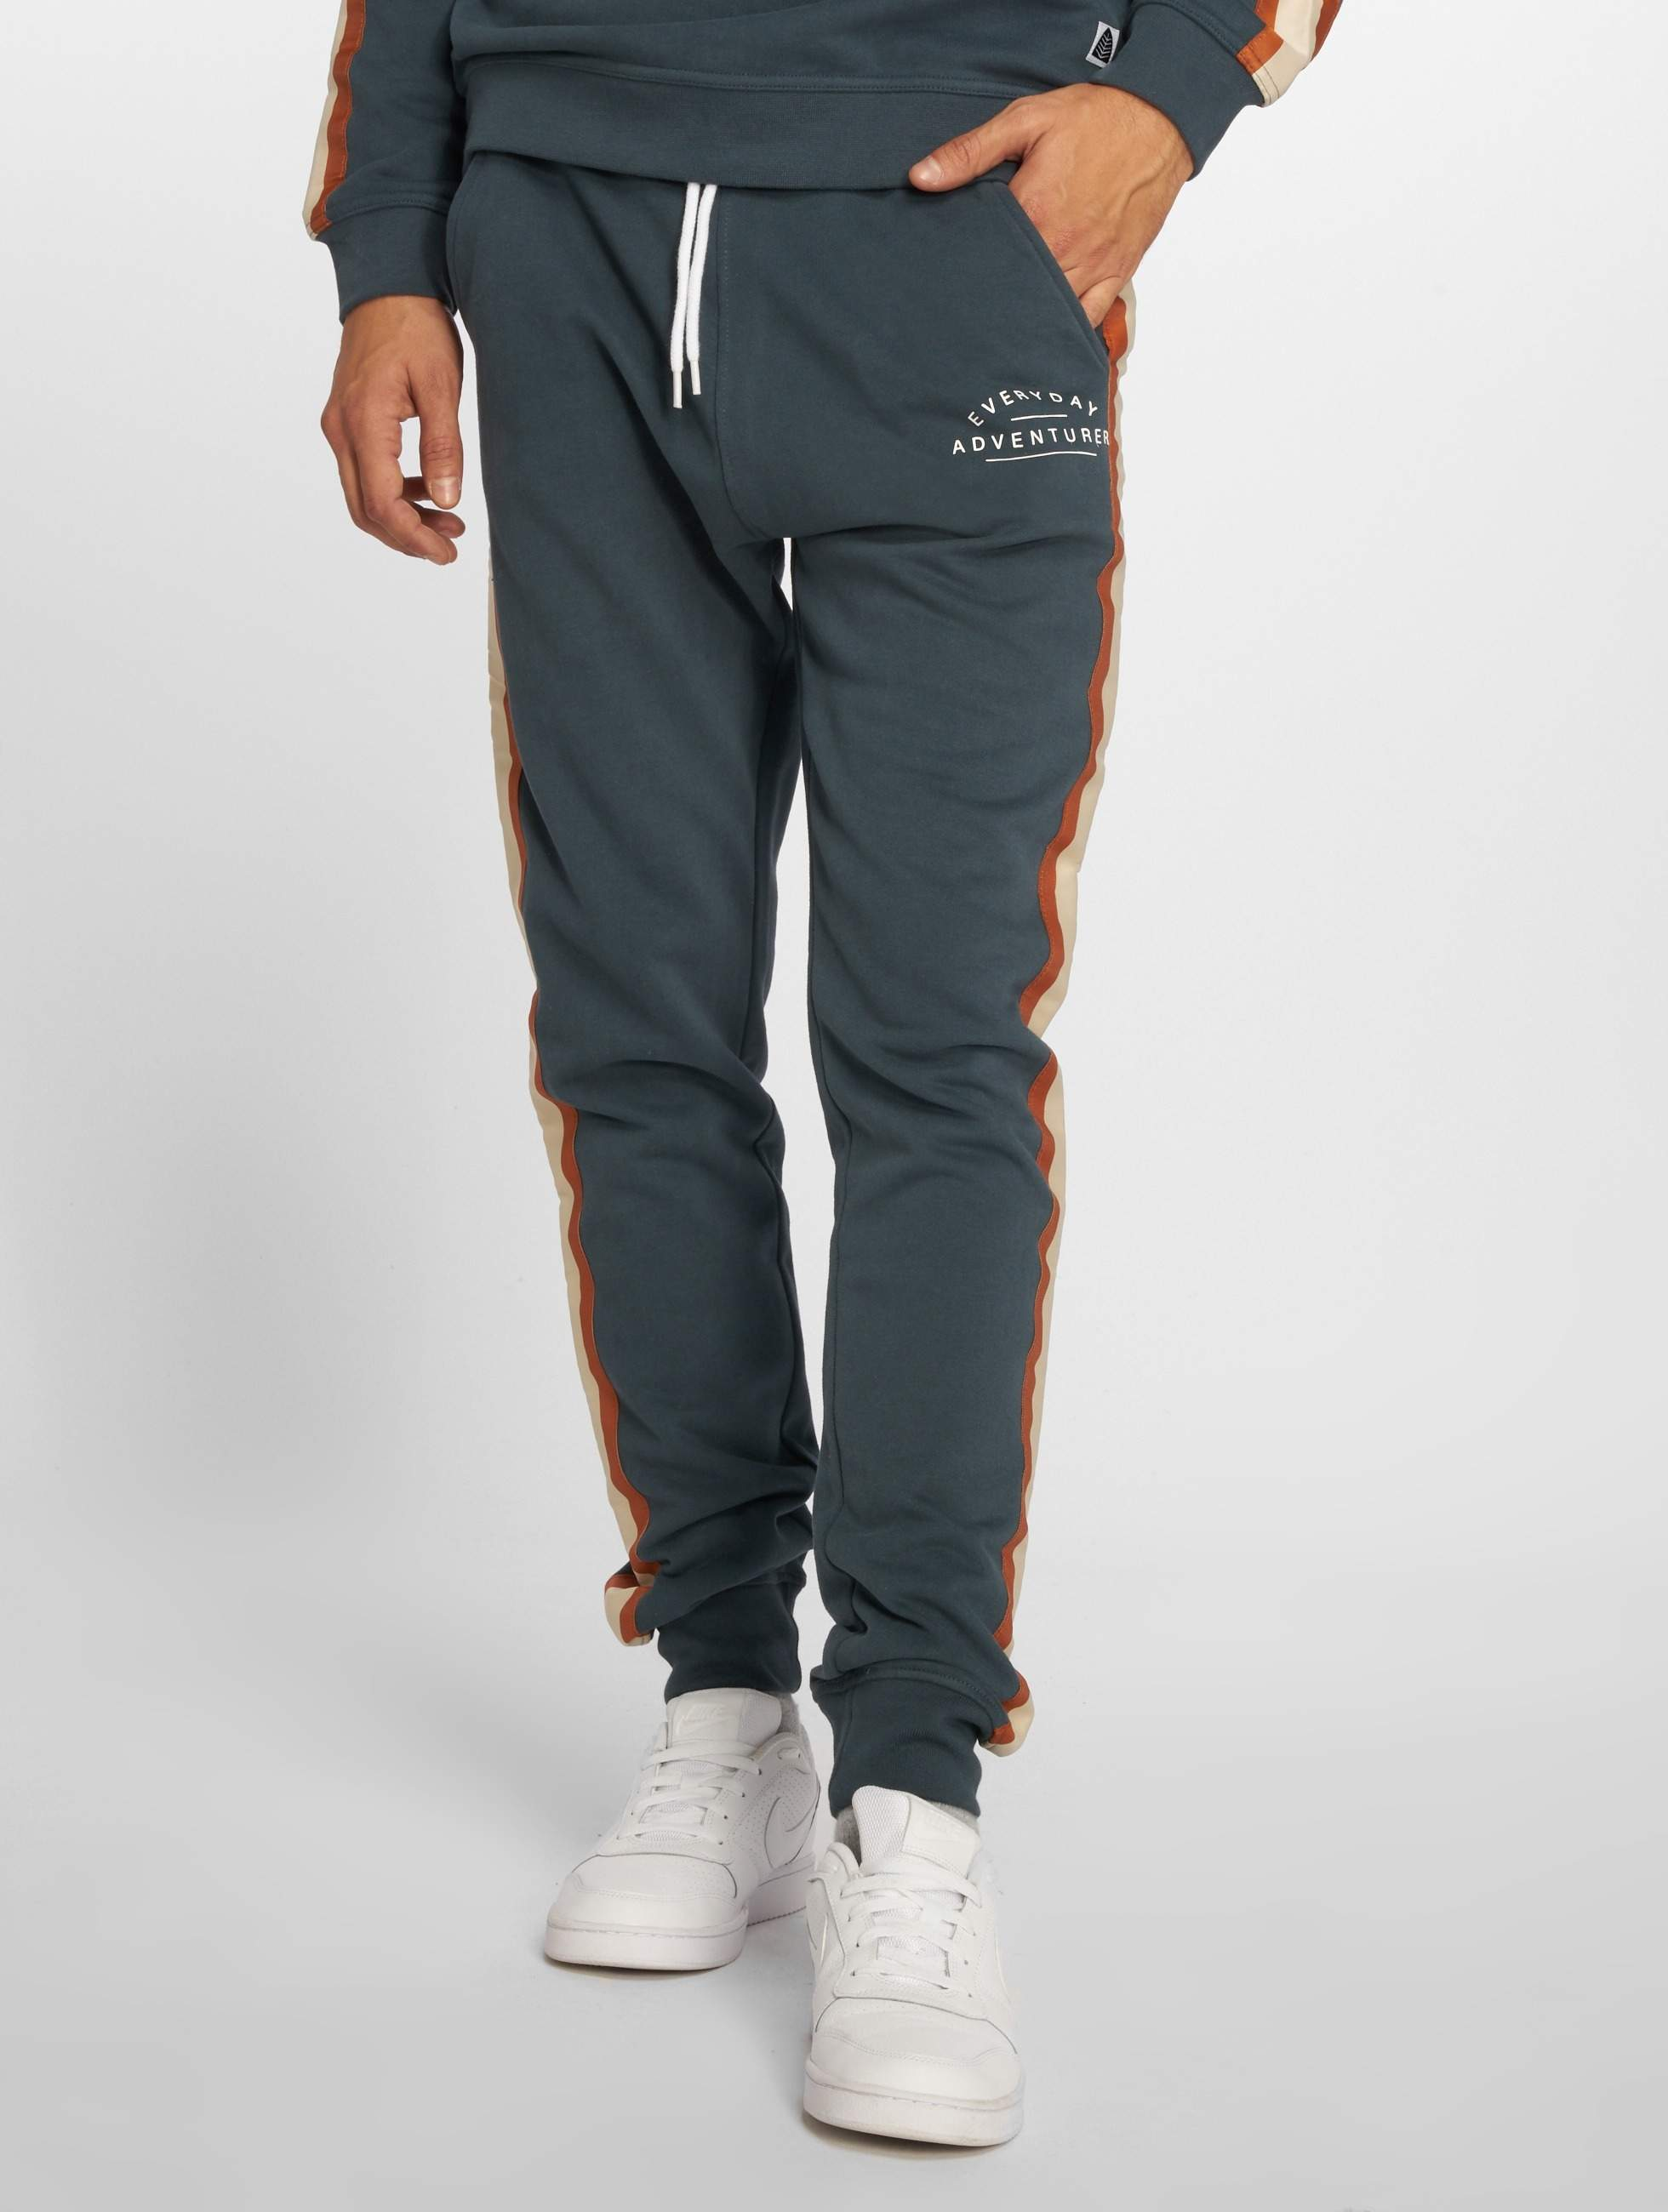 Just Rhyse / Sweat Pant Viacha in blue XL